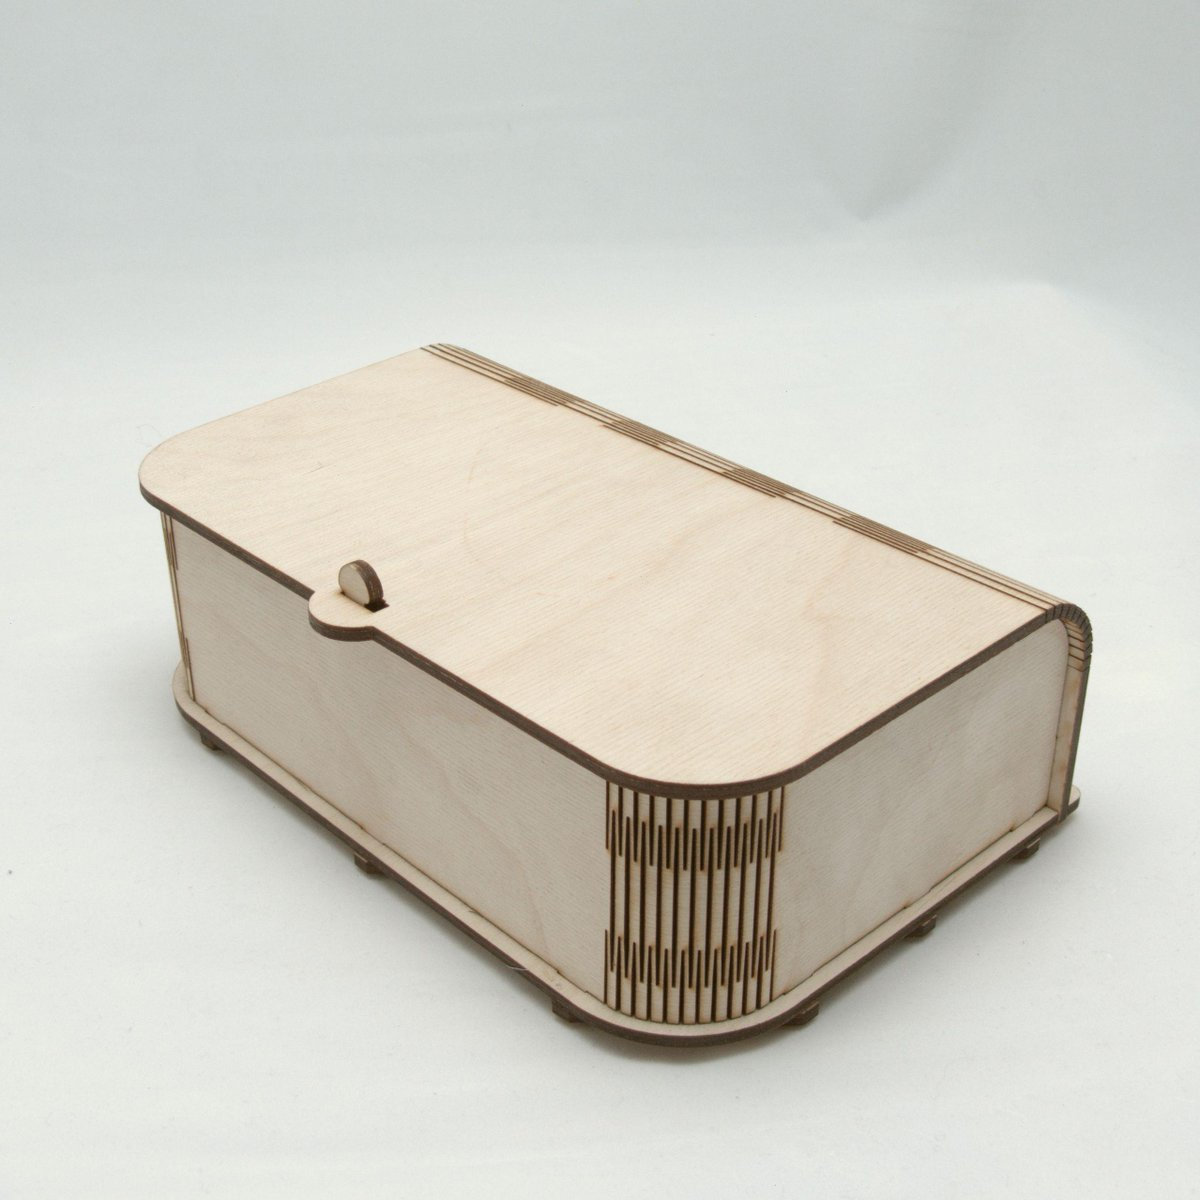 Lasercraft creations on twitter laser cut wooden box for Laser cut wood box template